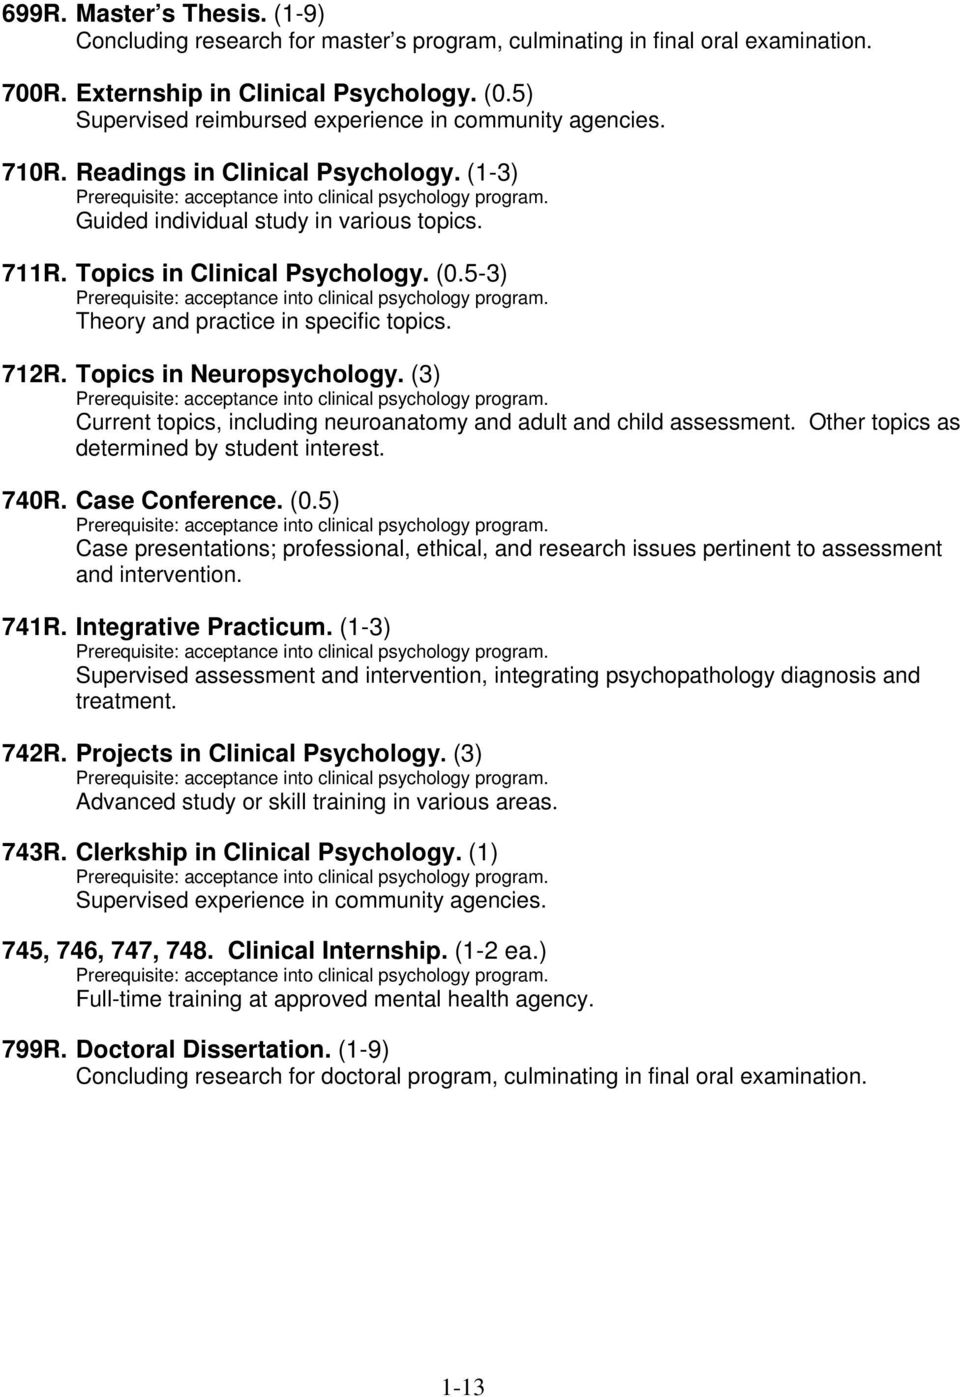 Guided individual study in various topics. 711R. Topics in Clinical Psychology. (0.5-3) Prerequisite: acceptance into clinical psychology program. Theory and practice in specific topics. 712R.